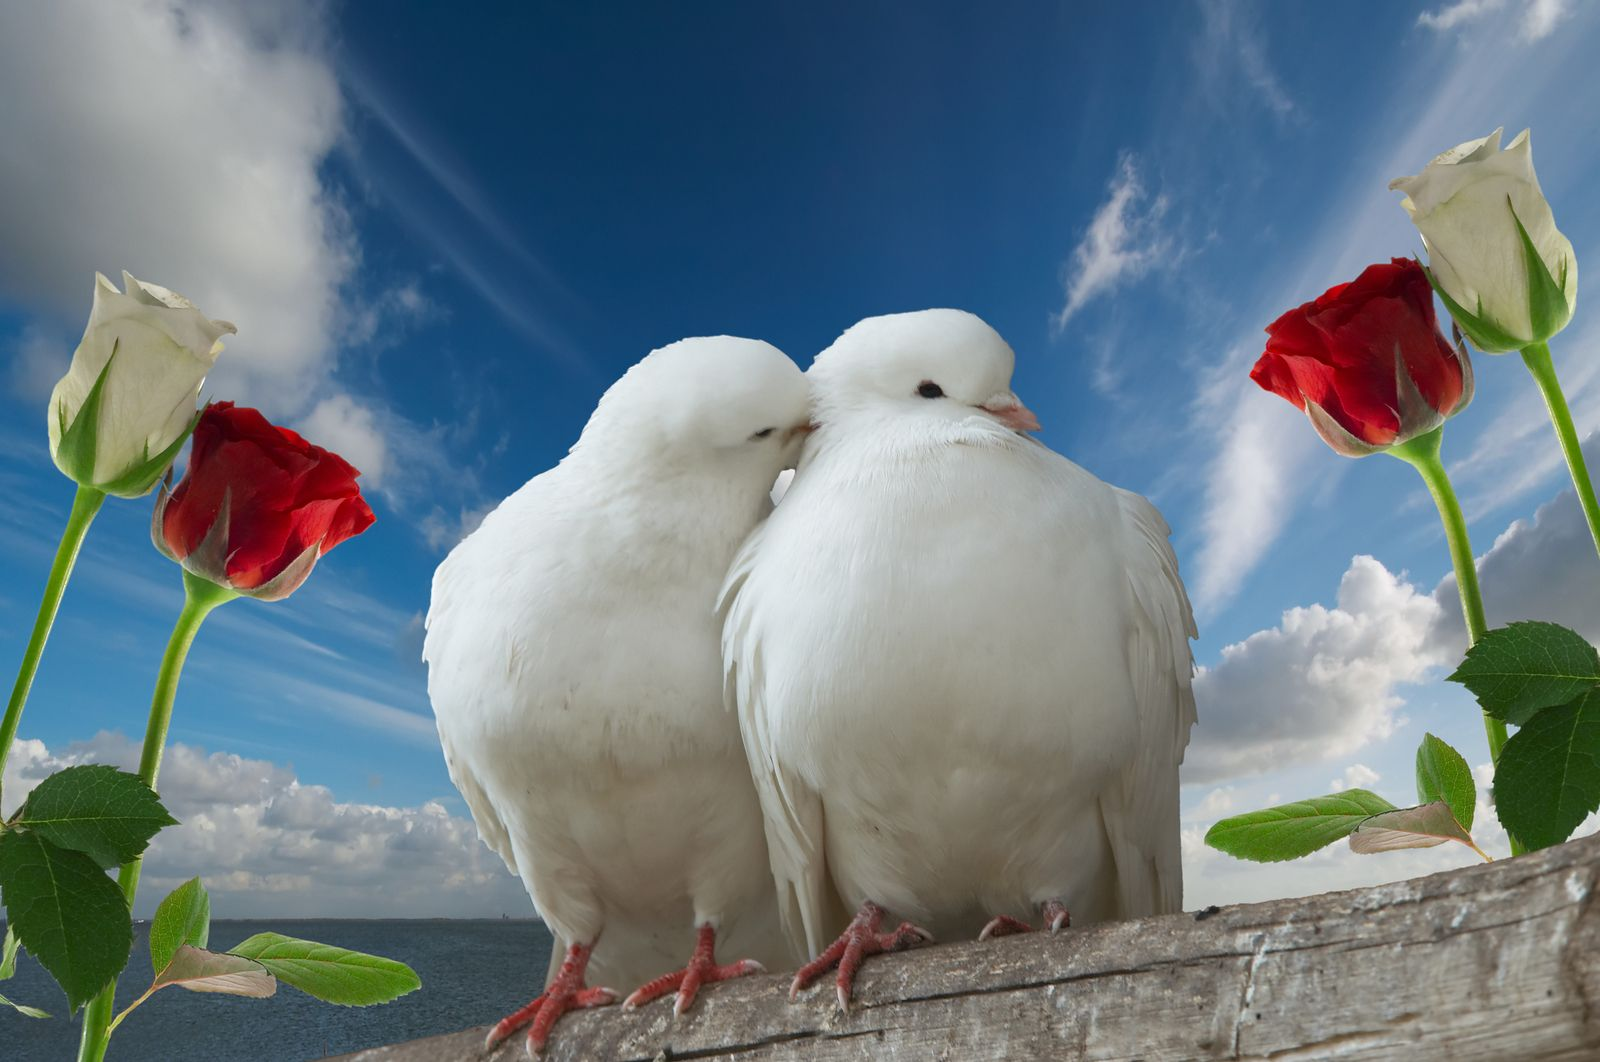 Pictures of doves whentalking doves is a symbol of peace and pictures of doves whentalking doves is a symbol of peace and love on valentines biocorpaavc